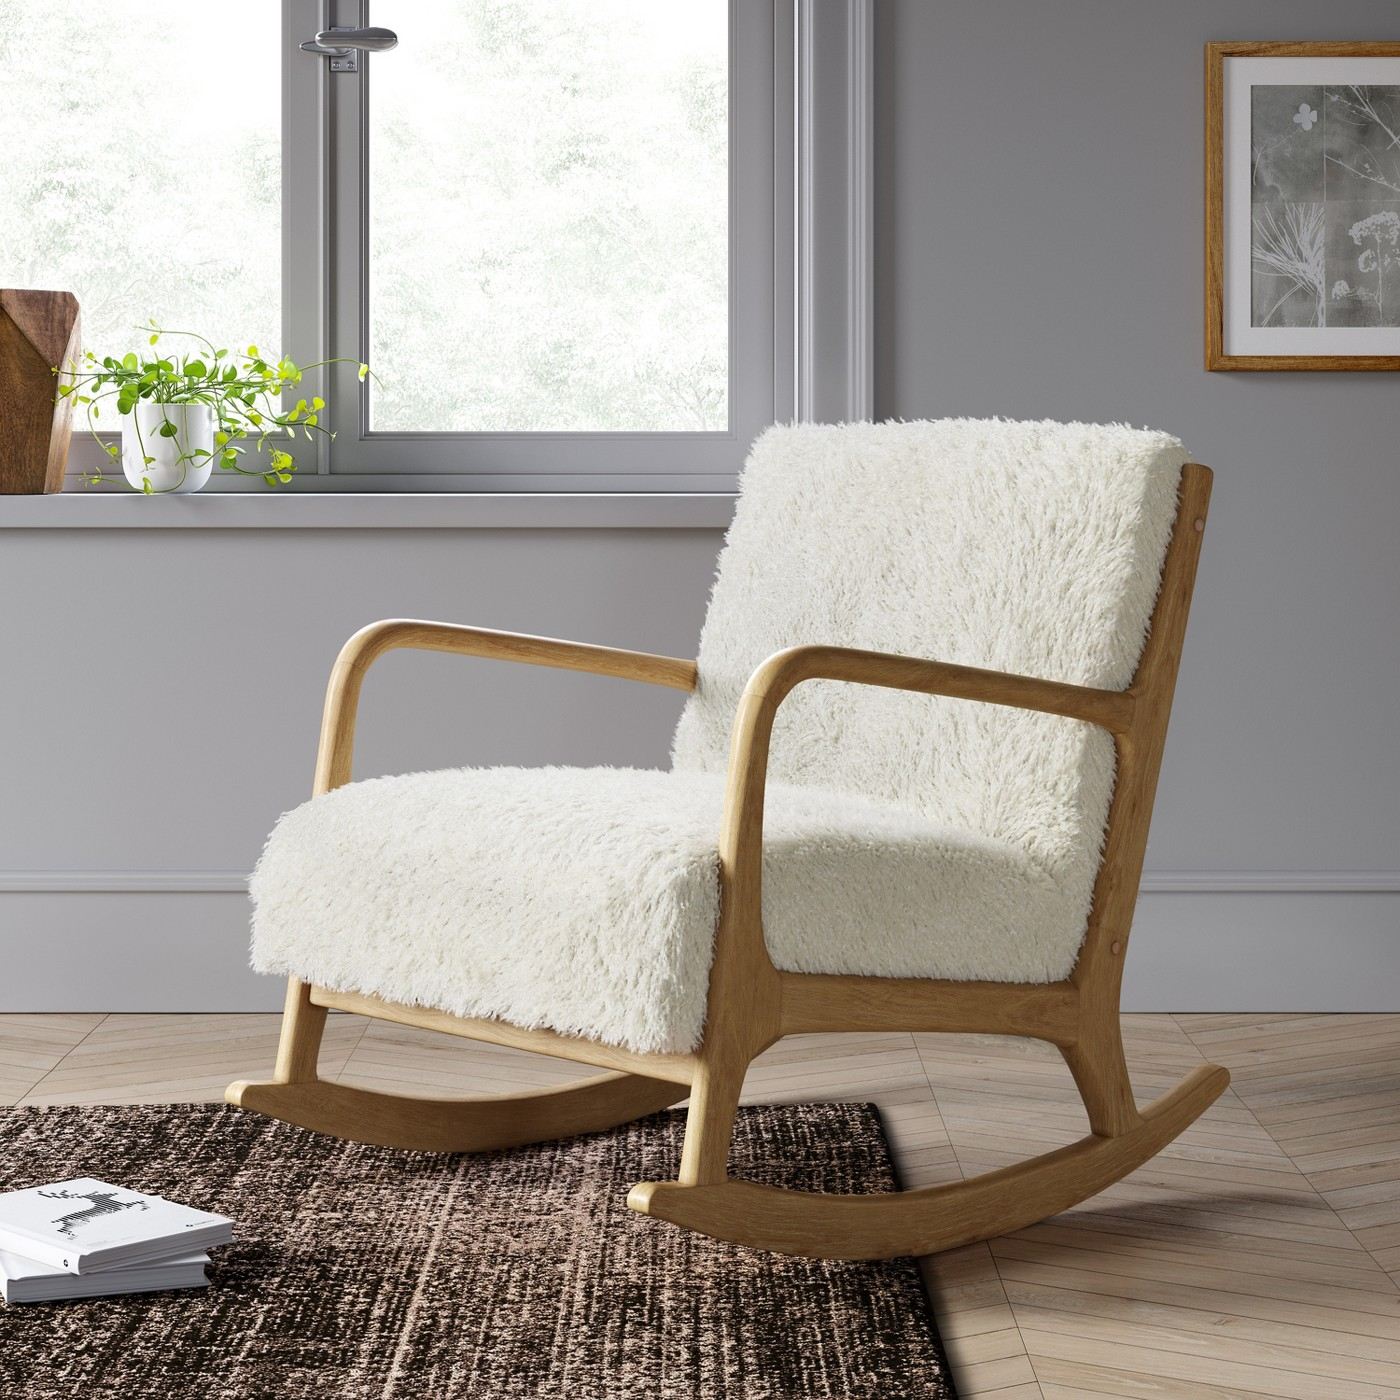 Sherpa rocking chair in wood and beige